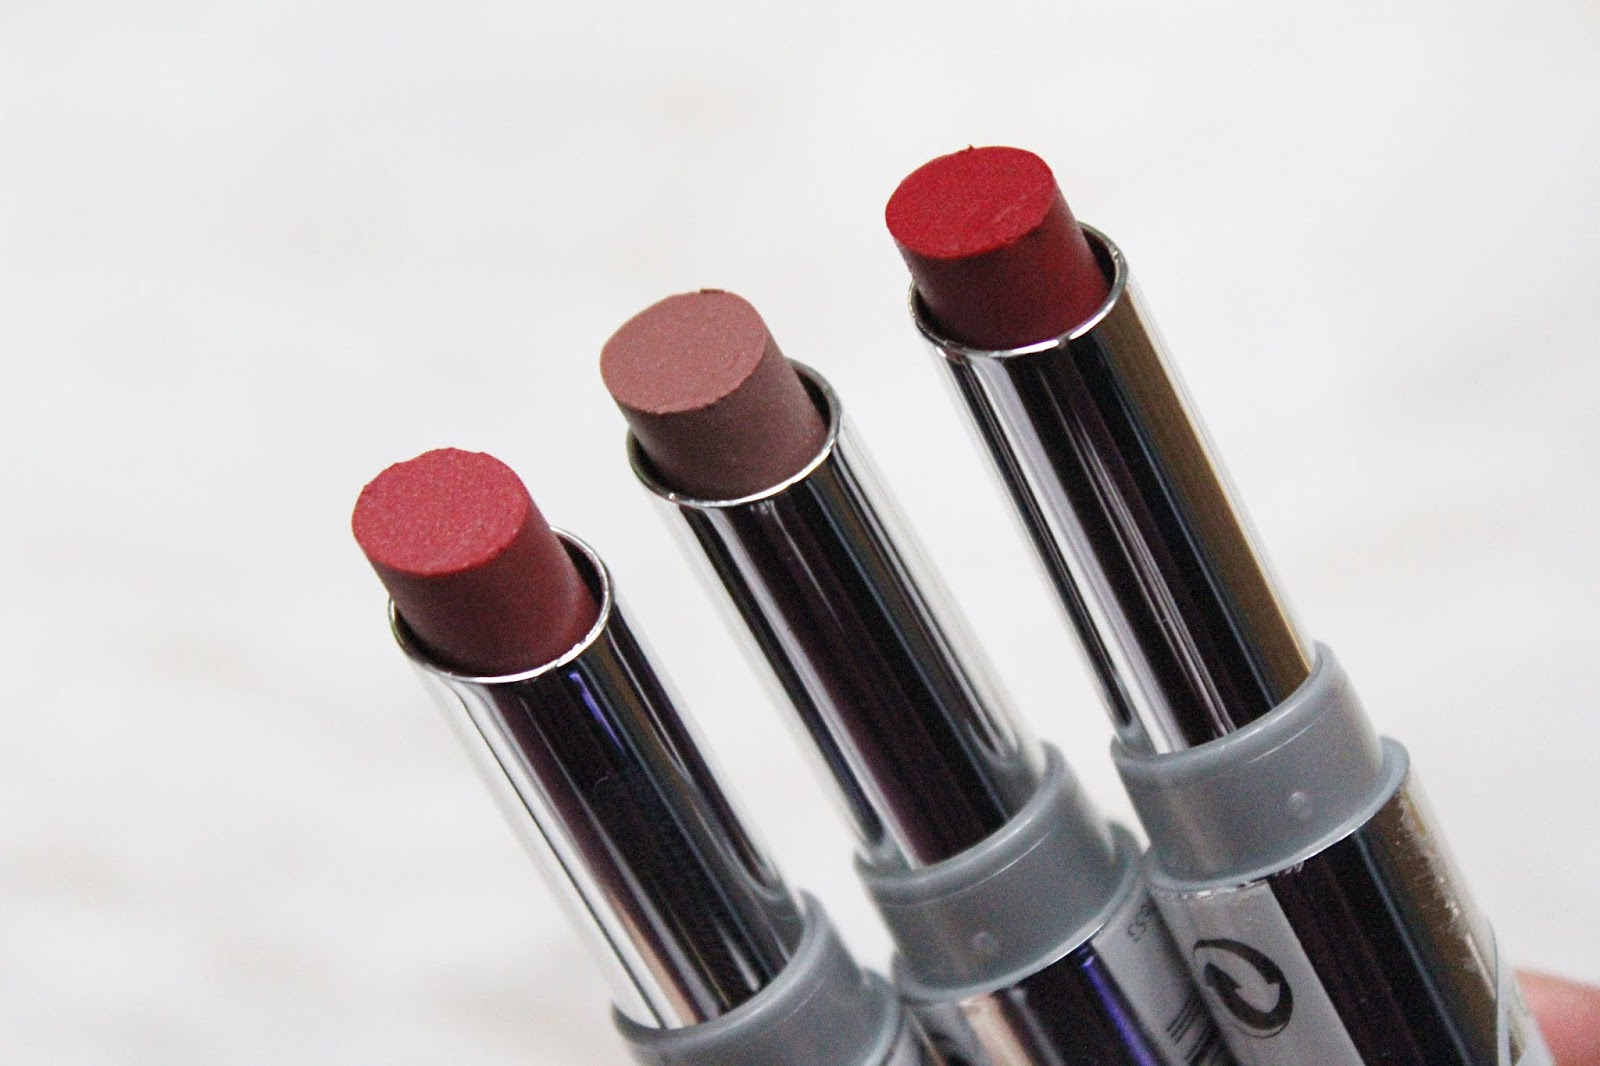 Lavera Lipsticks - Brilliant Care with Q10